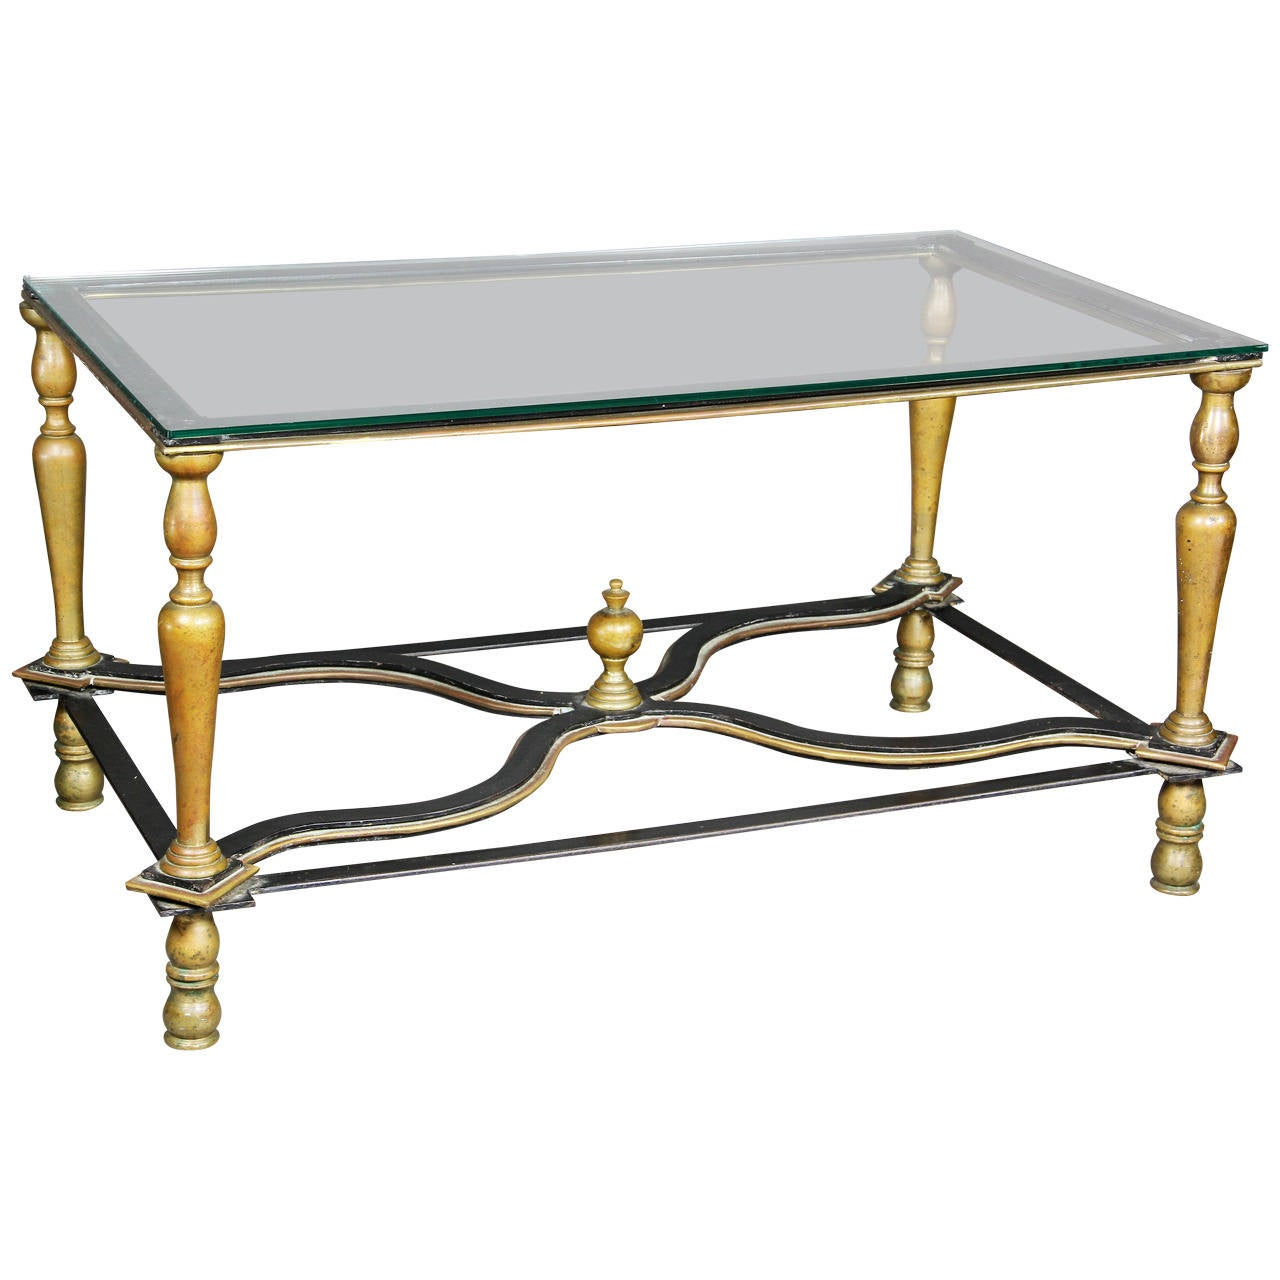 Bronze And Wrought Iron Coffee Table For Sale At 1stdibs